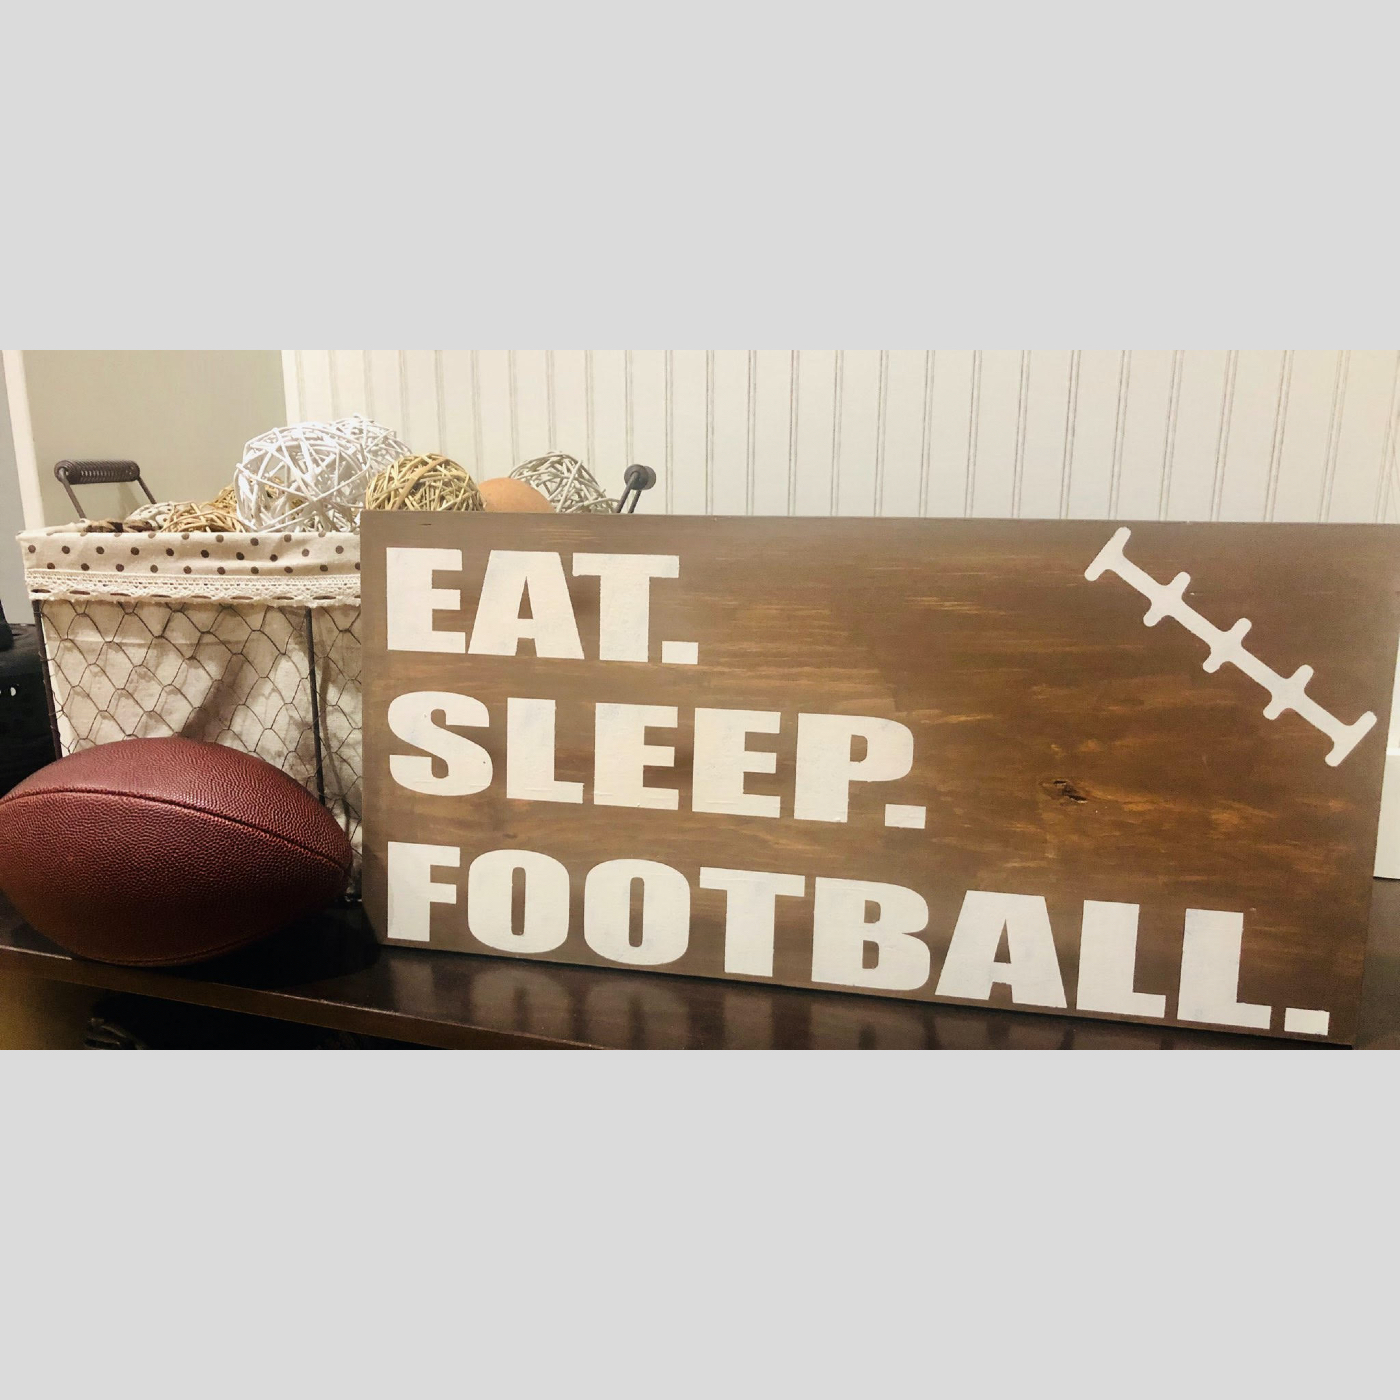 Eat. Sleep. Football. DIY Kids Wood Sign